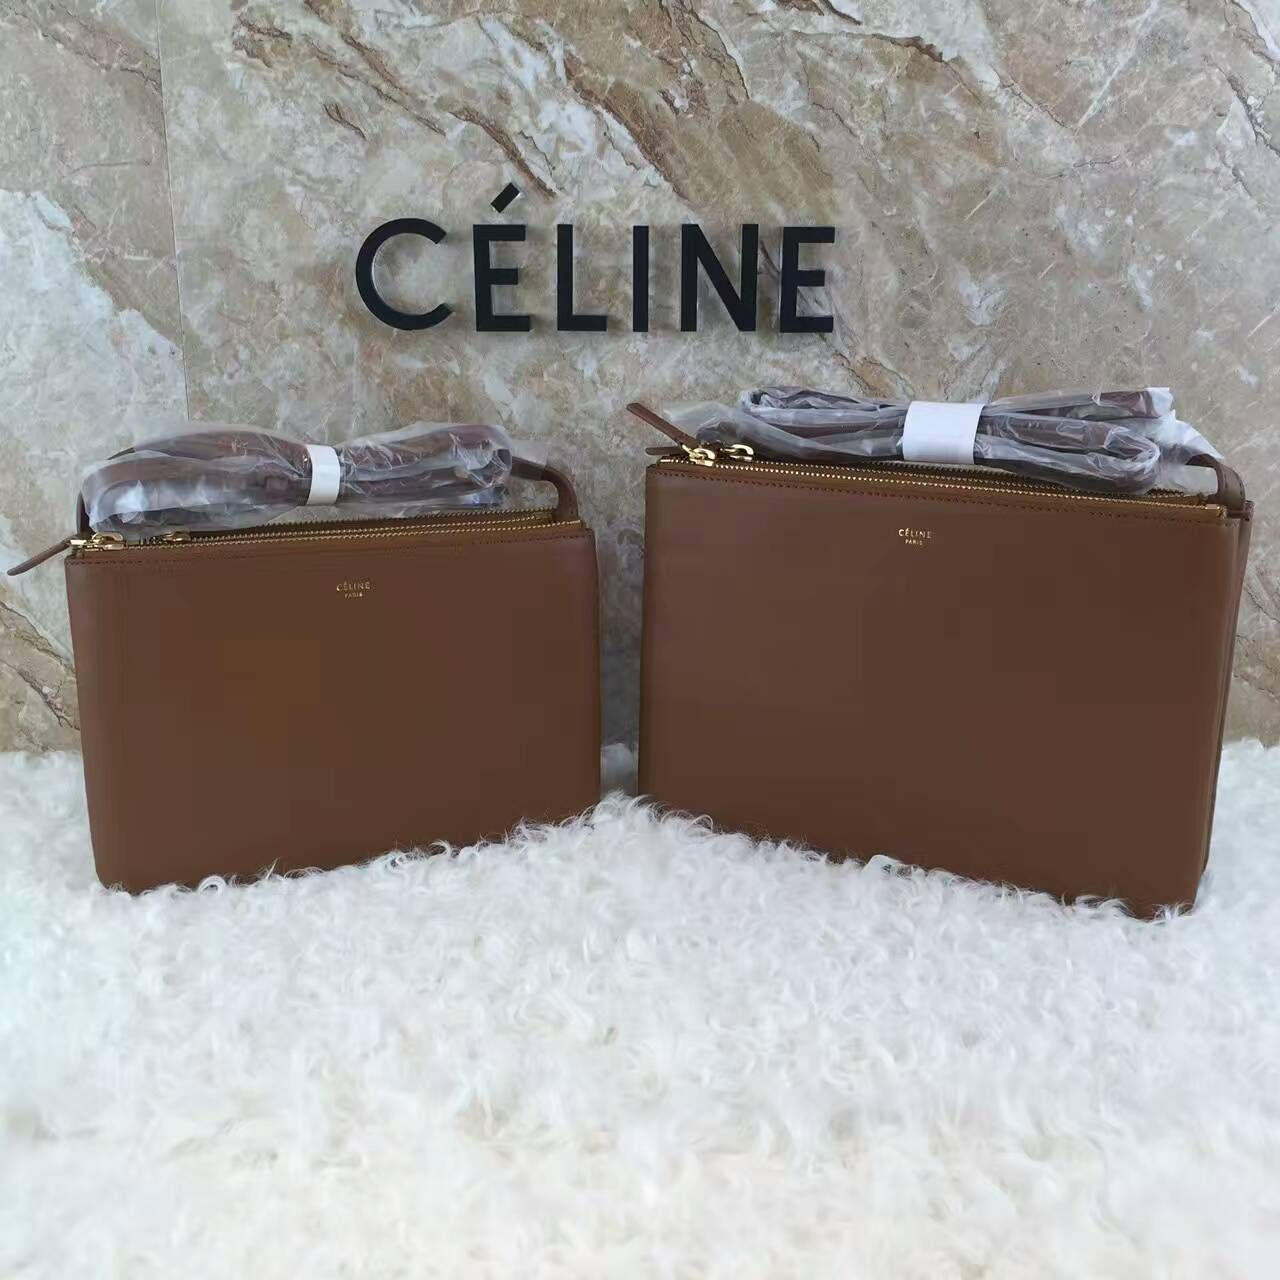 8814a86e8e6d Celine TRIO SHOULDER BAG IN BLACK GRAINED LAMBSKIN 15076(15077) size 22x4x15(25x4x17)cm  04400480C1 whatsapp +8615503787453